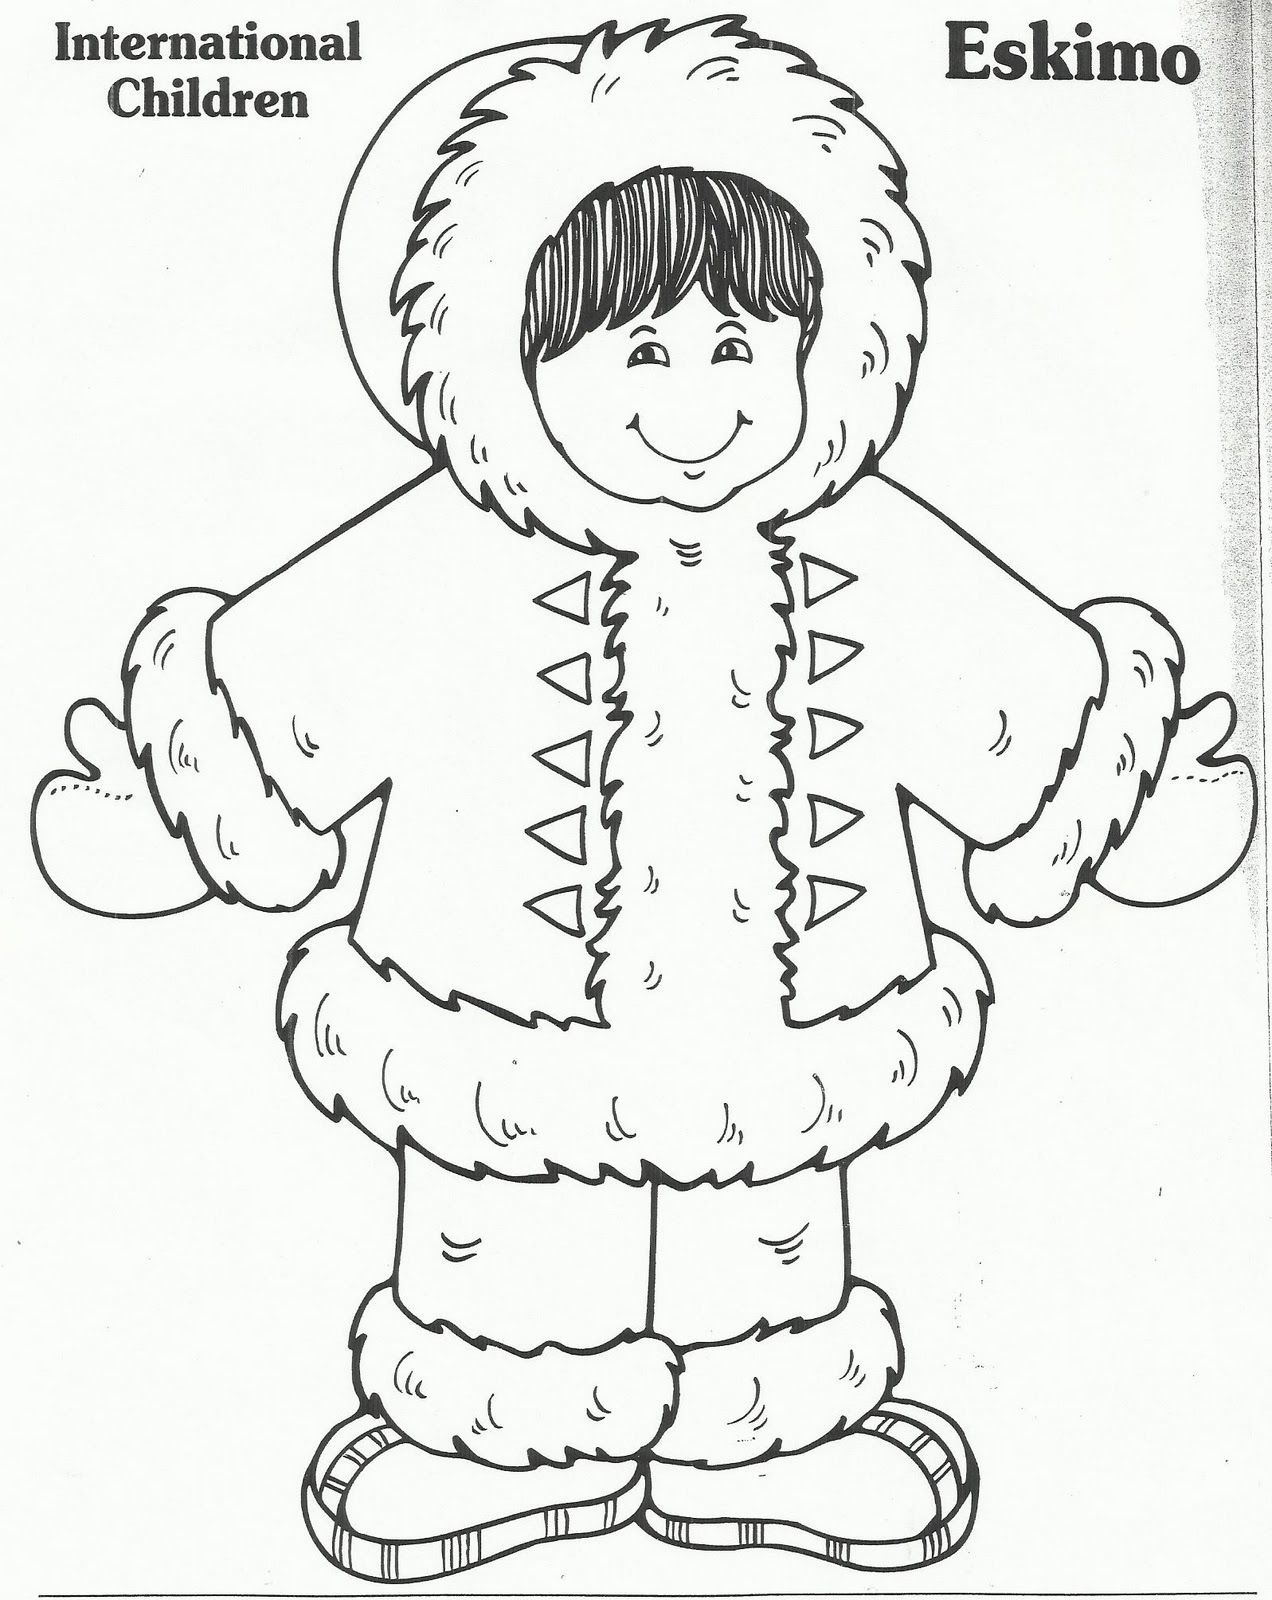 Eskimo Preschool Fun Pinterest